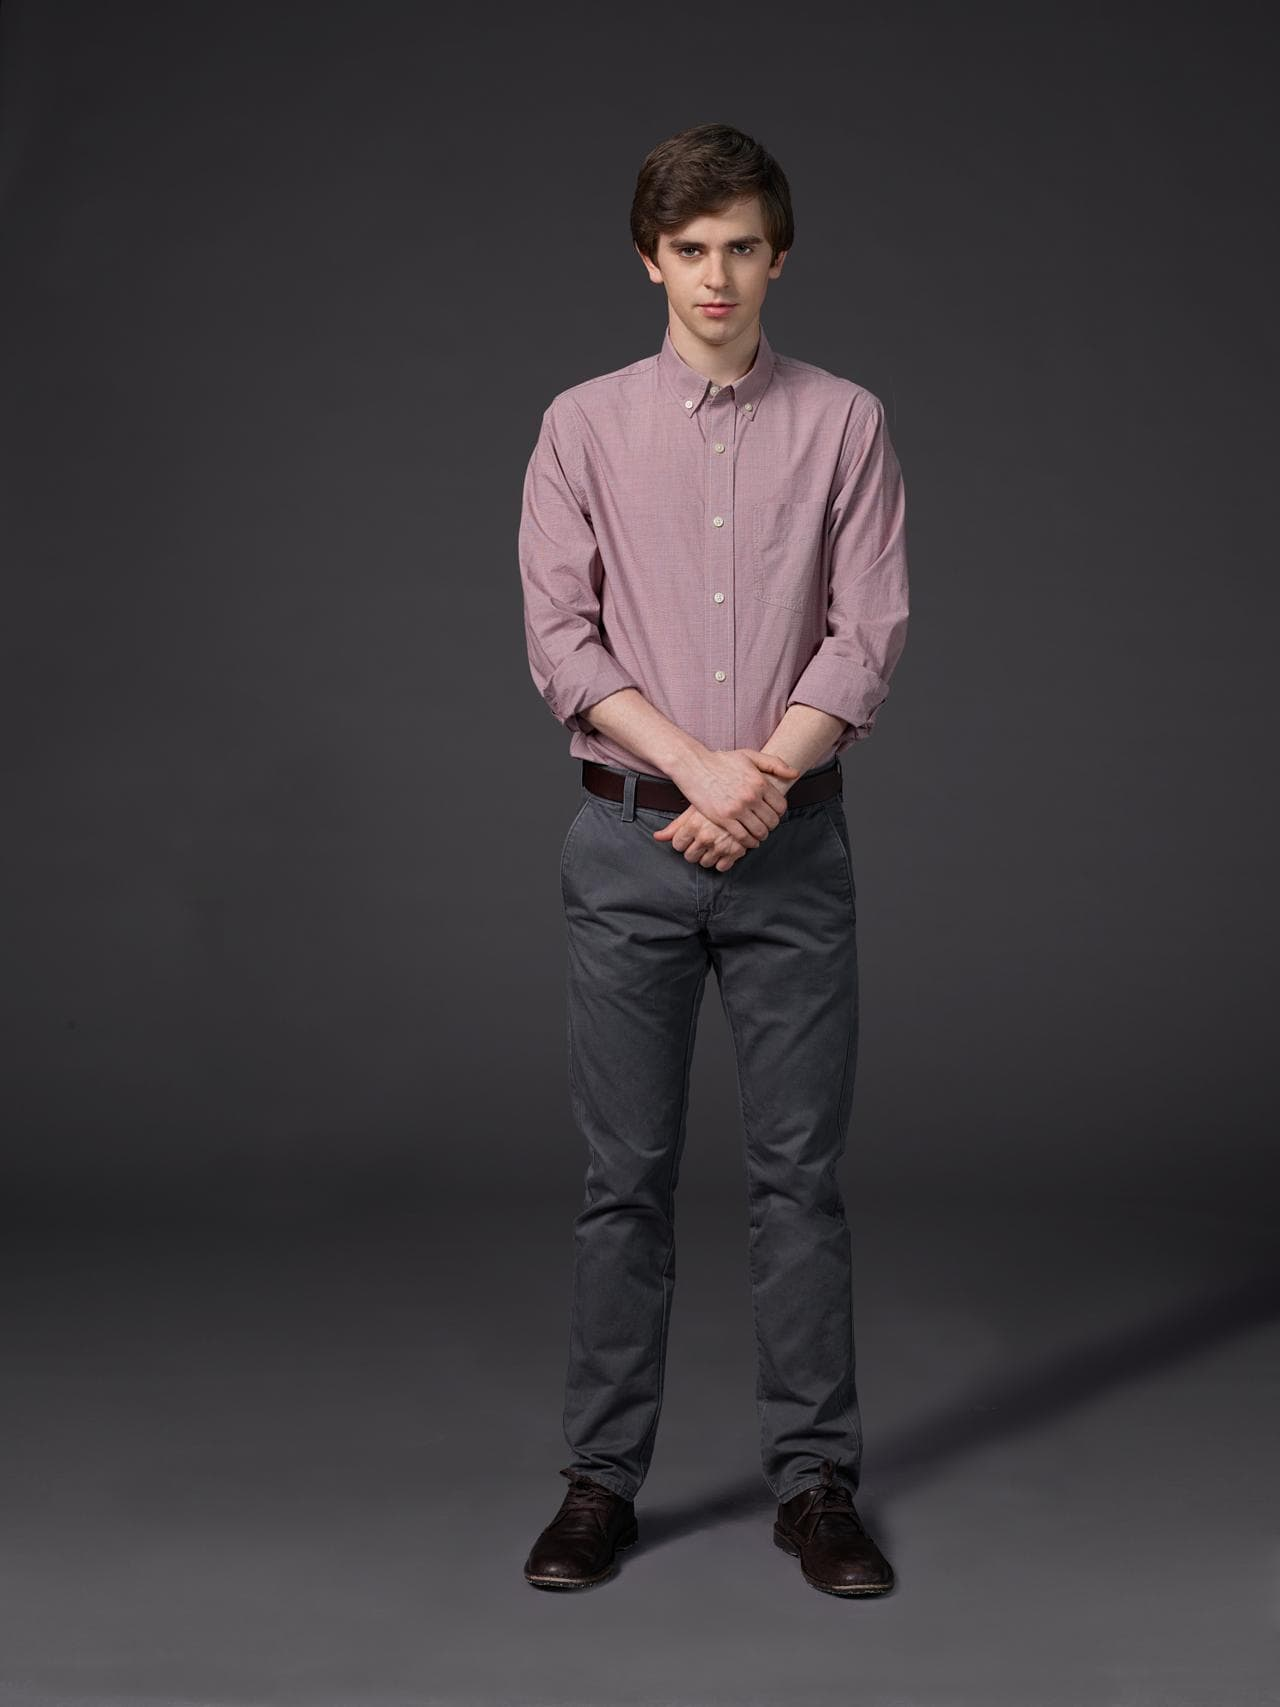 Freddie Highmore HD